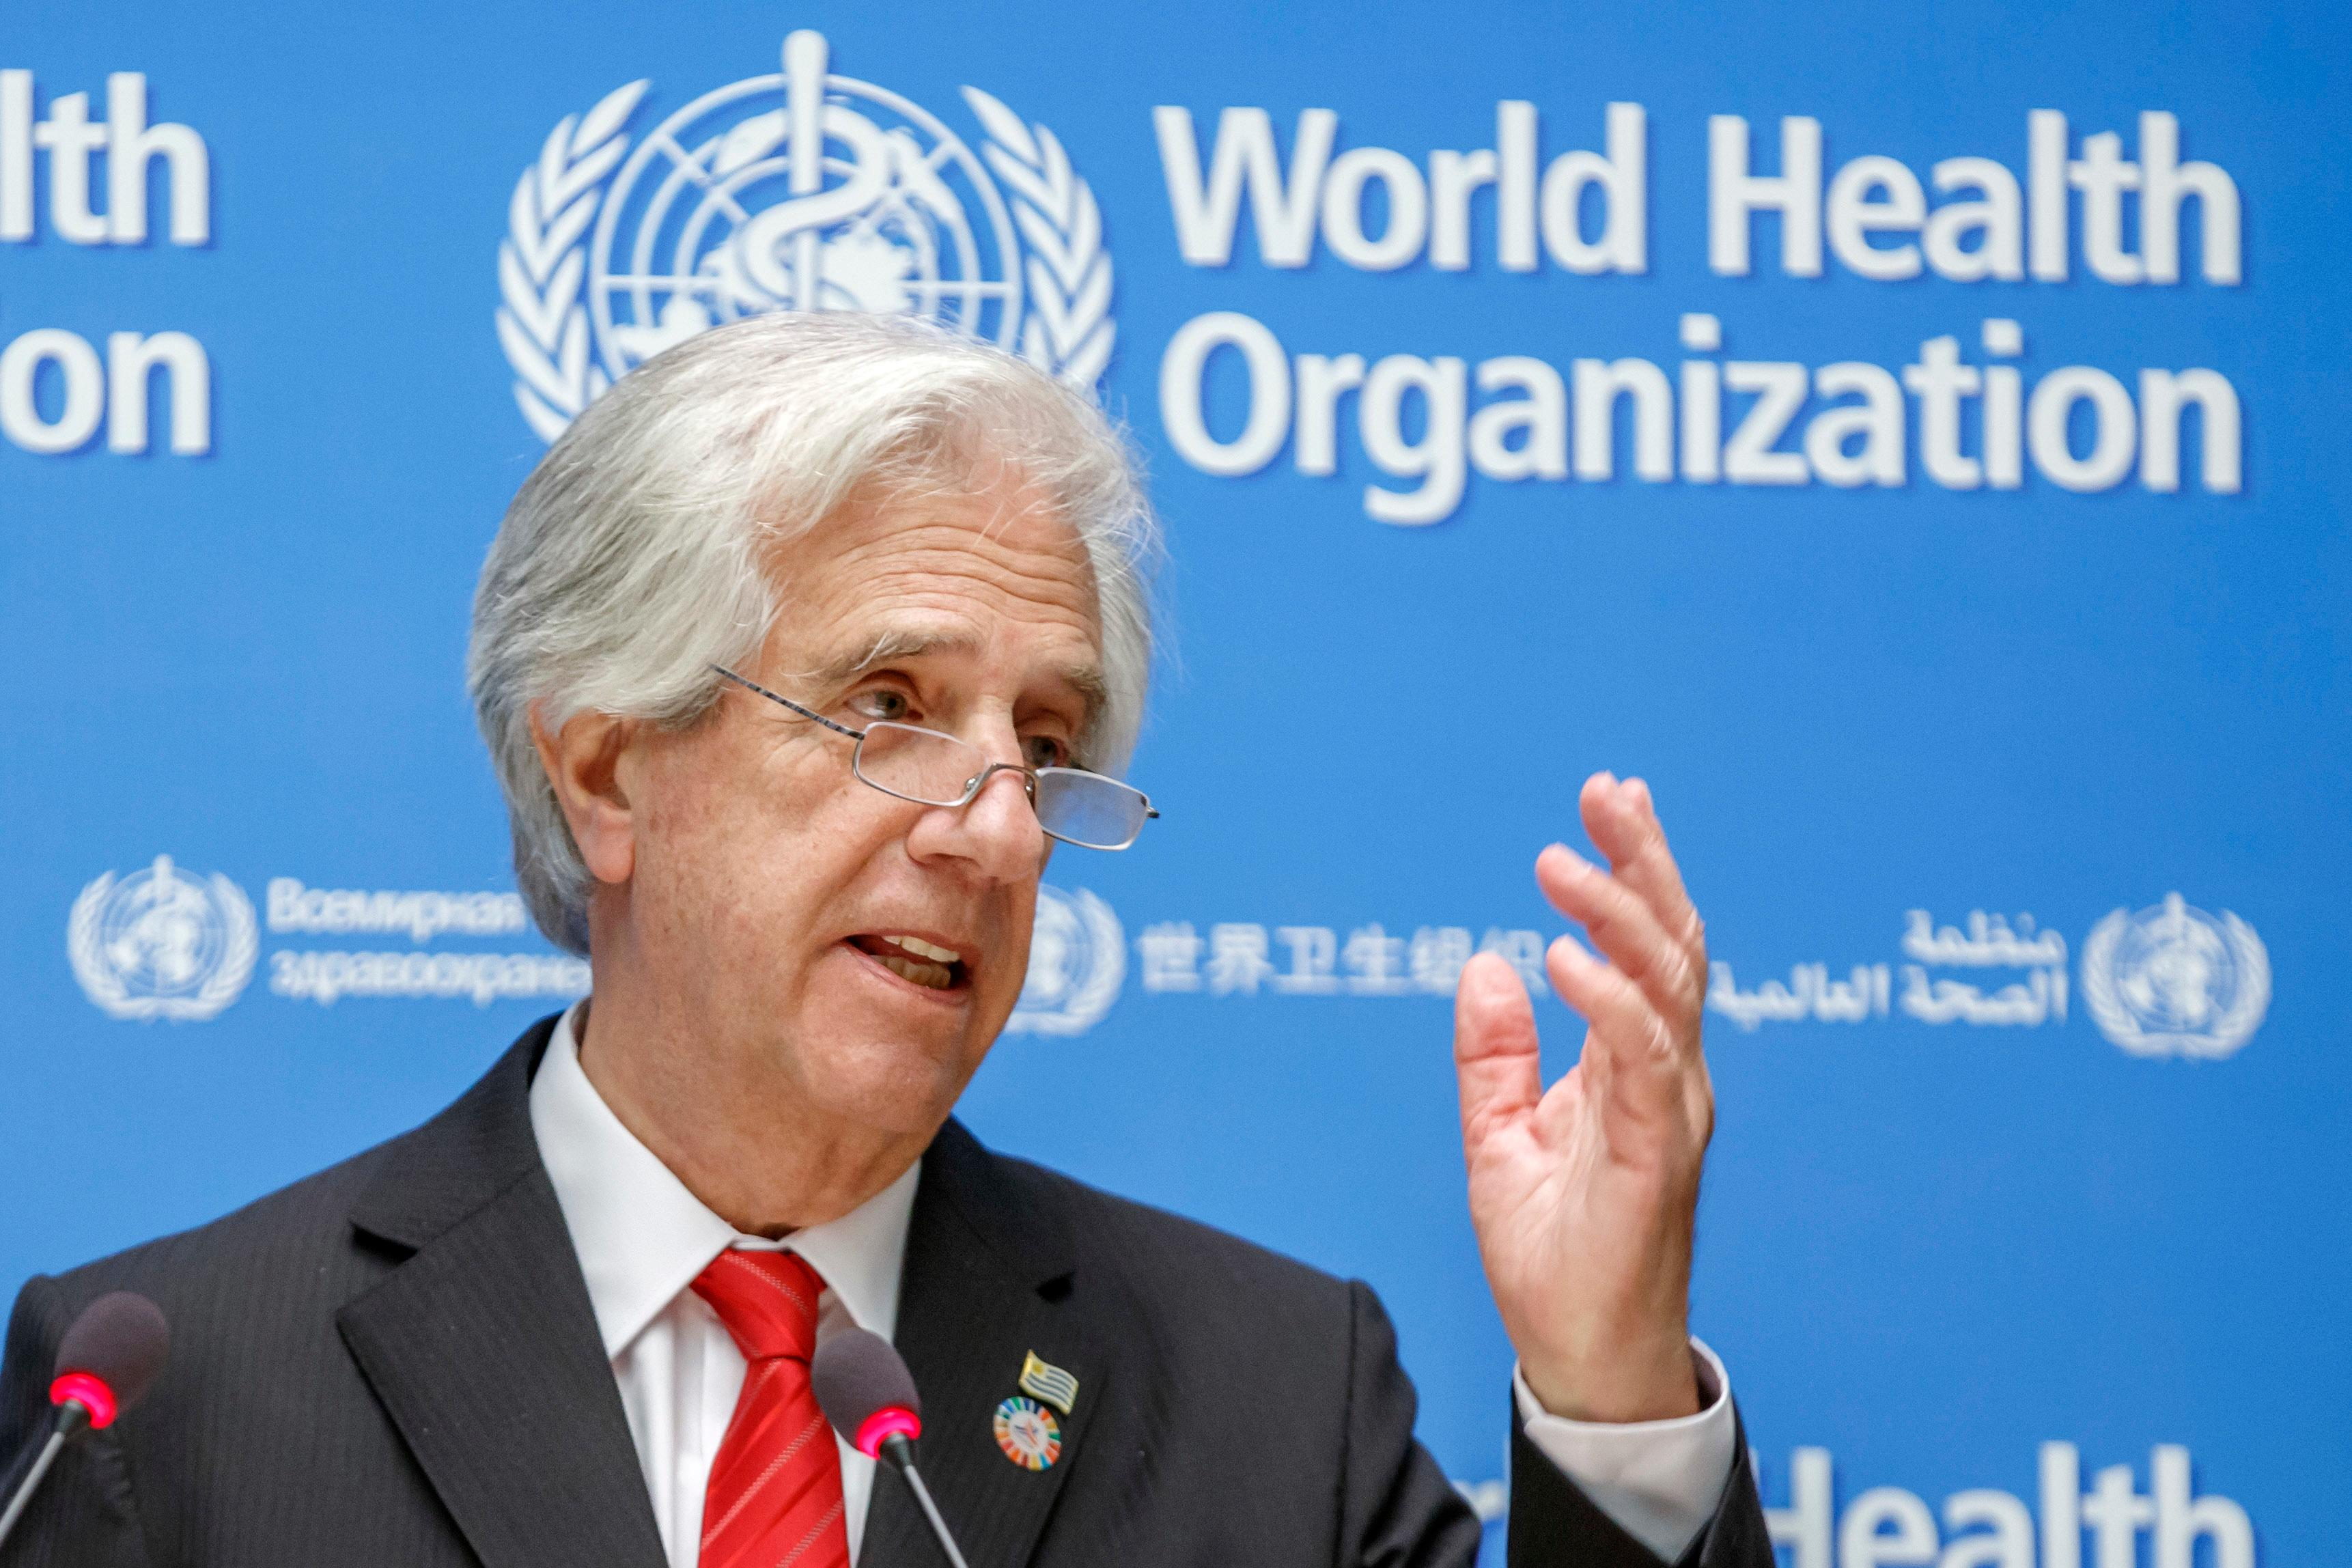 Uruguay's President Tabare Vazquez gestures during his statement as part of the launch of the report WHO Independent High-Level Commission on Noncommunicable Diseases (NDCs) at the headquarters of the World Health Organization (WHO) in Geneva, Switzerland, Friday, June 1, 2018. (Salvatore Di Nolfi/Keystone via AP)